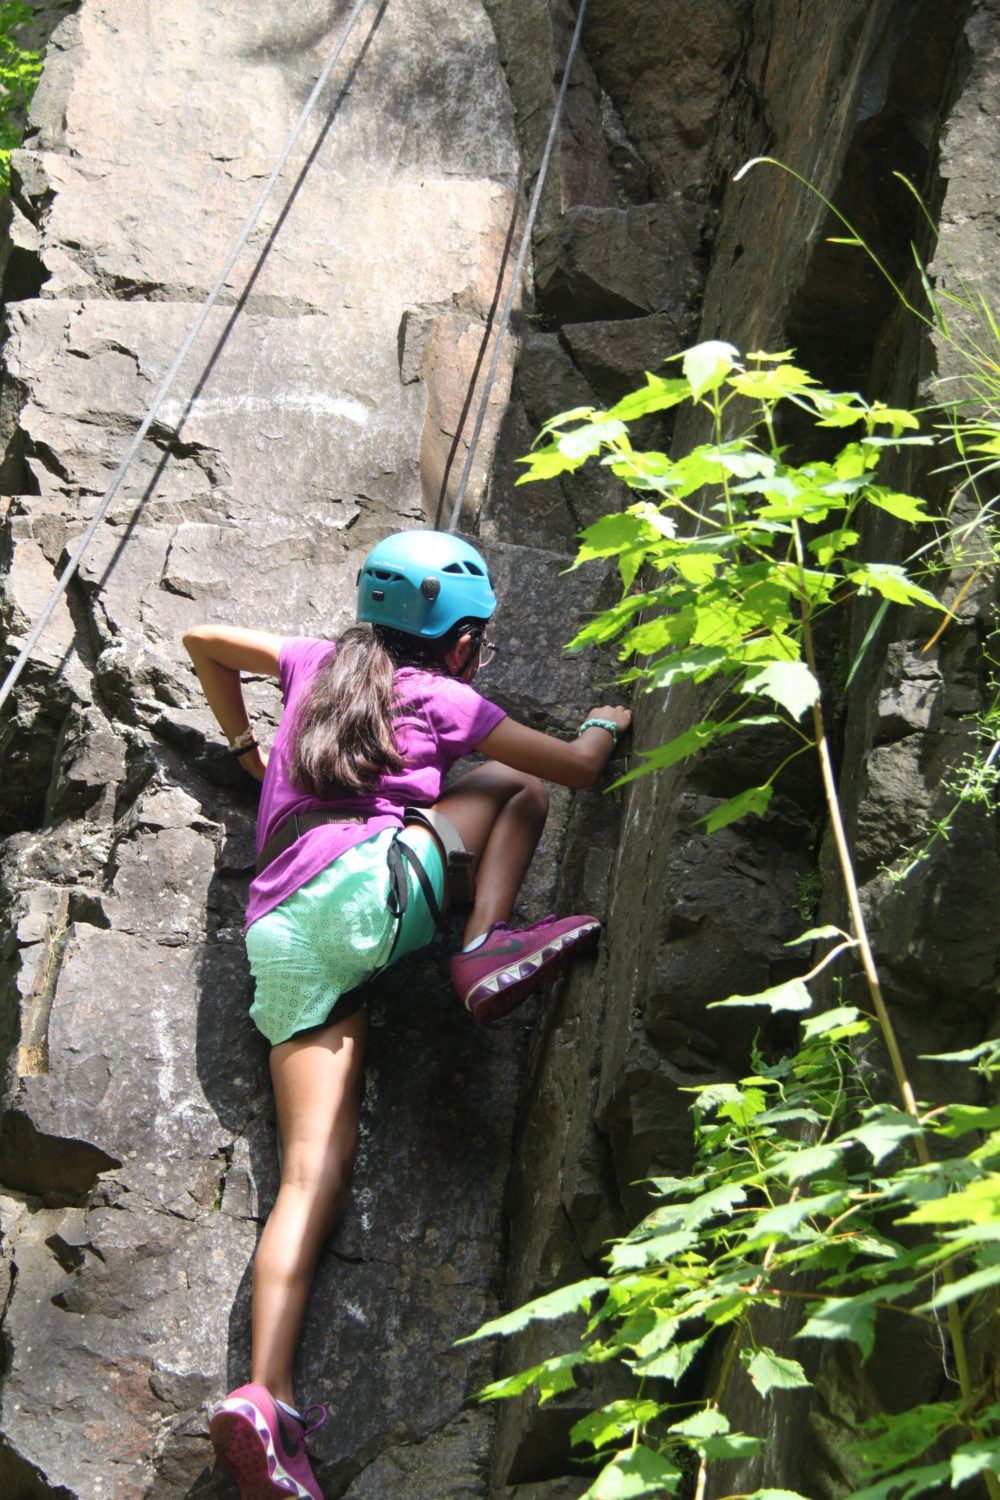 Girl climbing up a rock wall